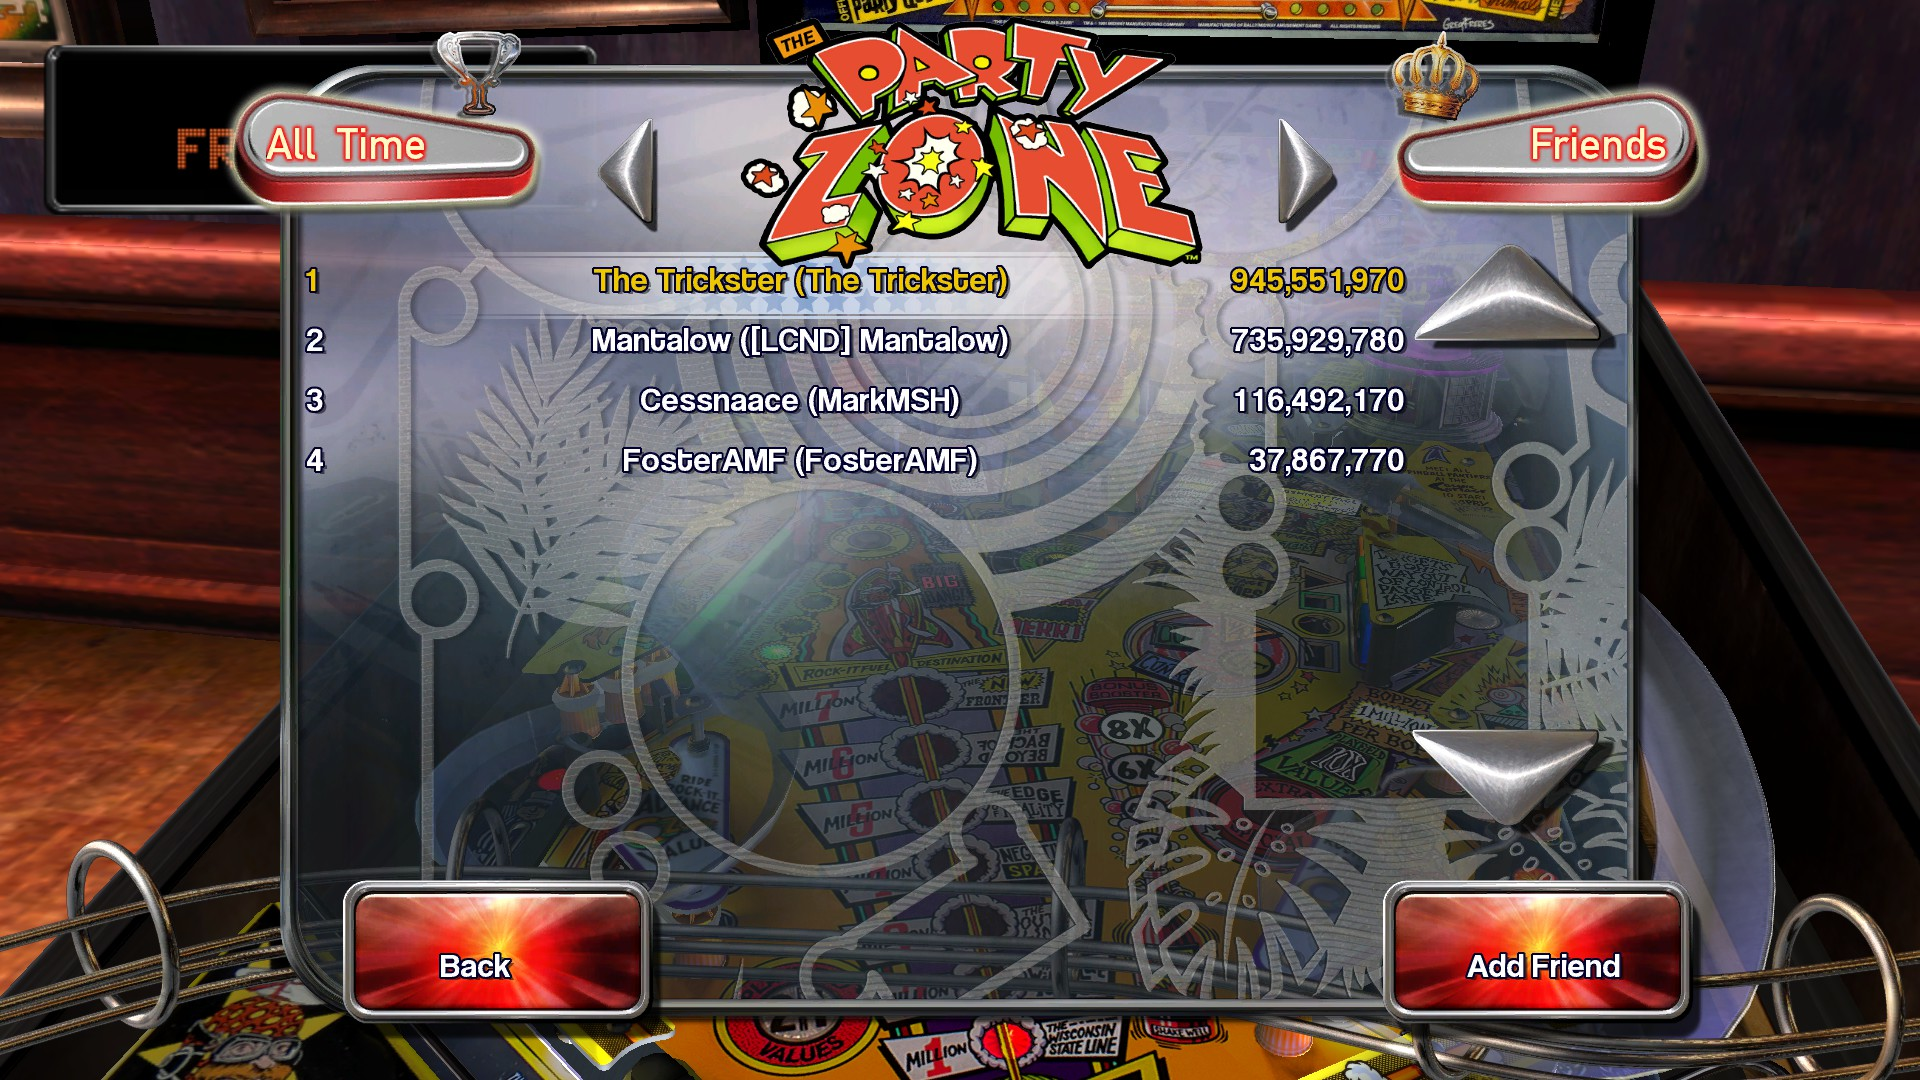 Pinball Arcade: Party Zone 945,551,970 points